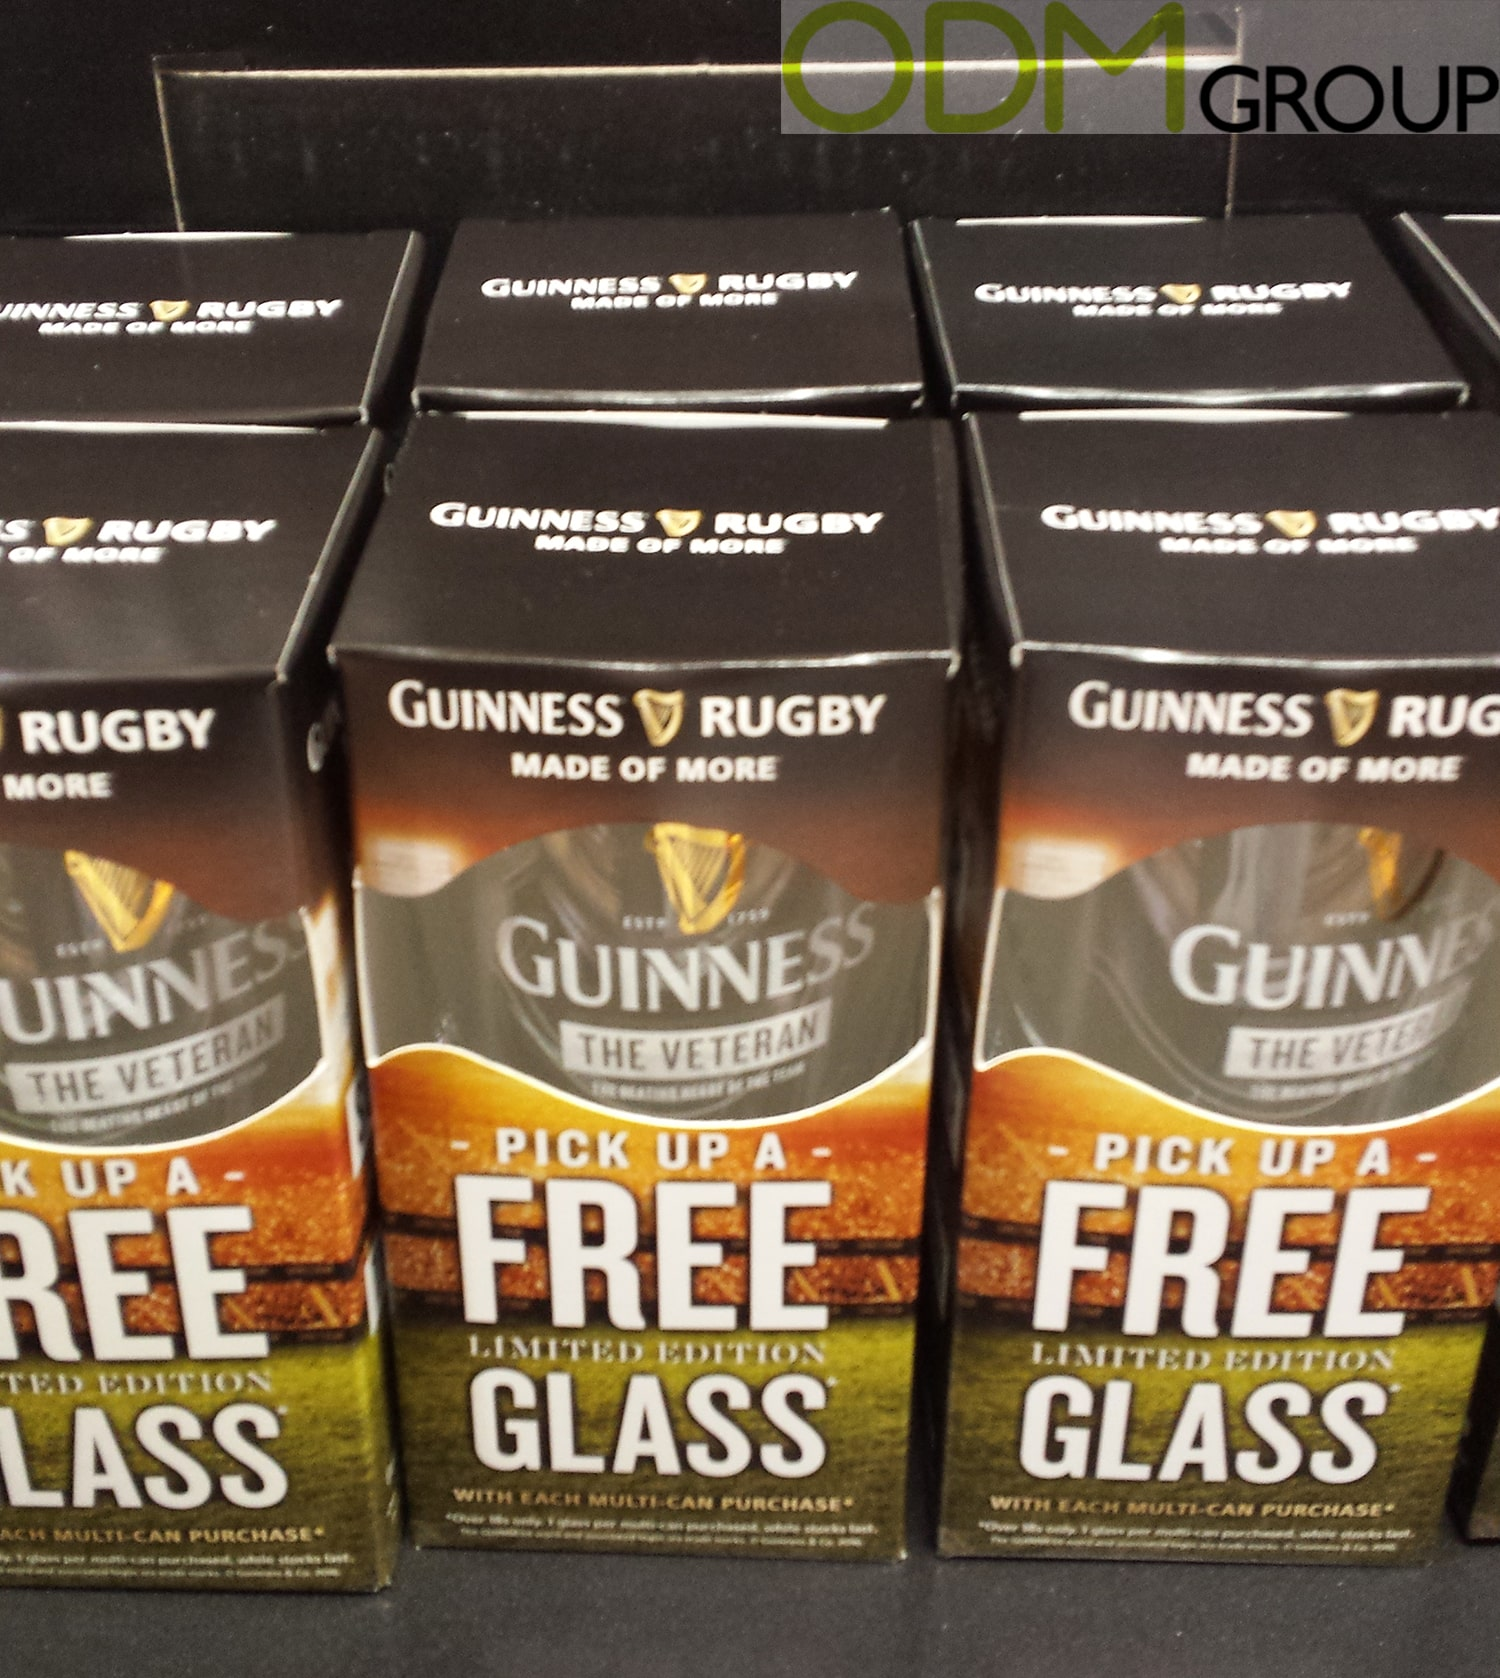 Free Glass by Guinness - Rugby World Cup Promotion